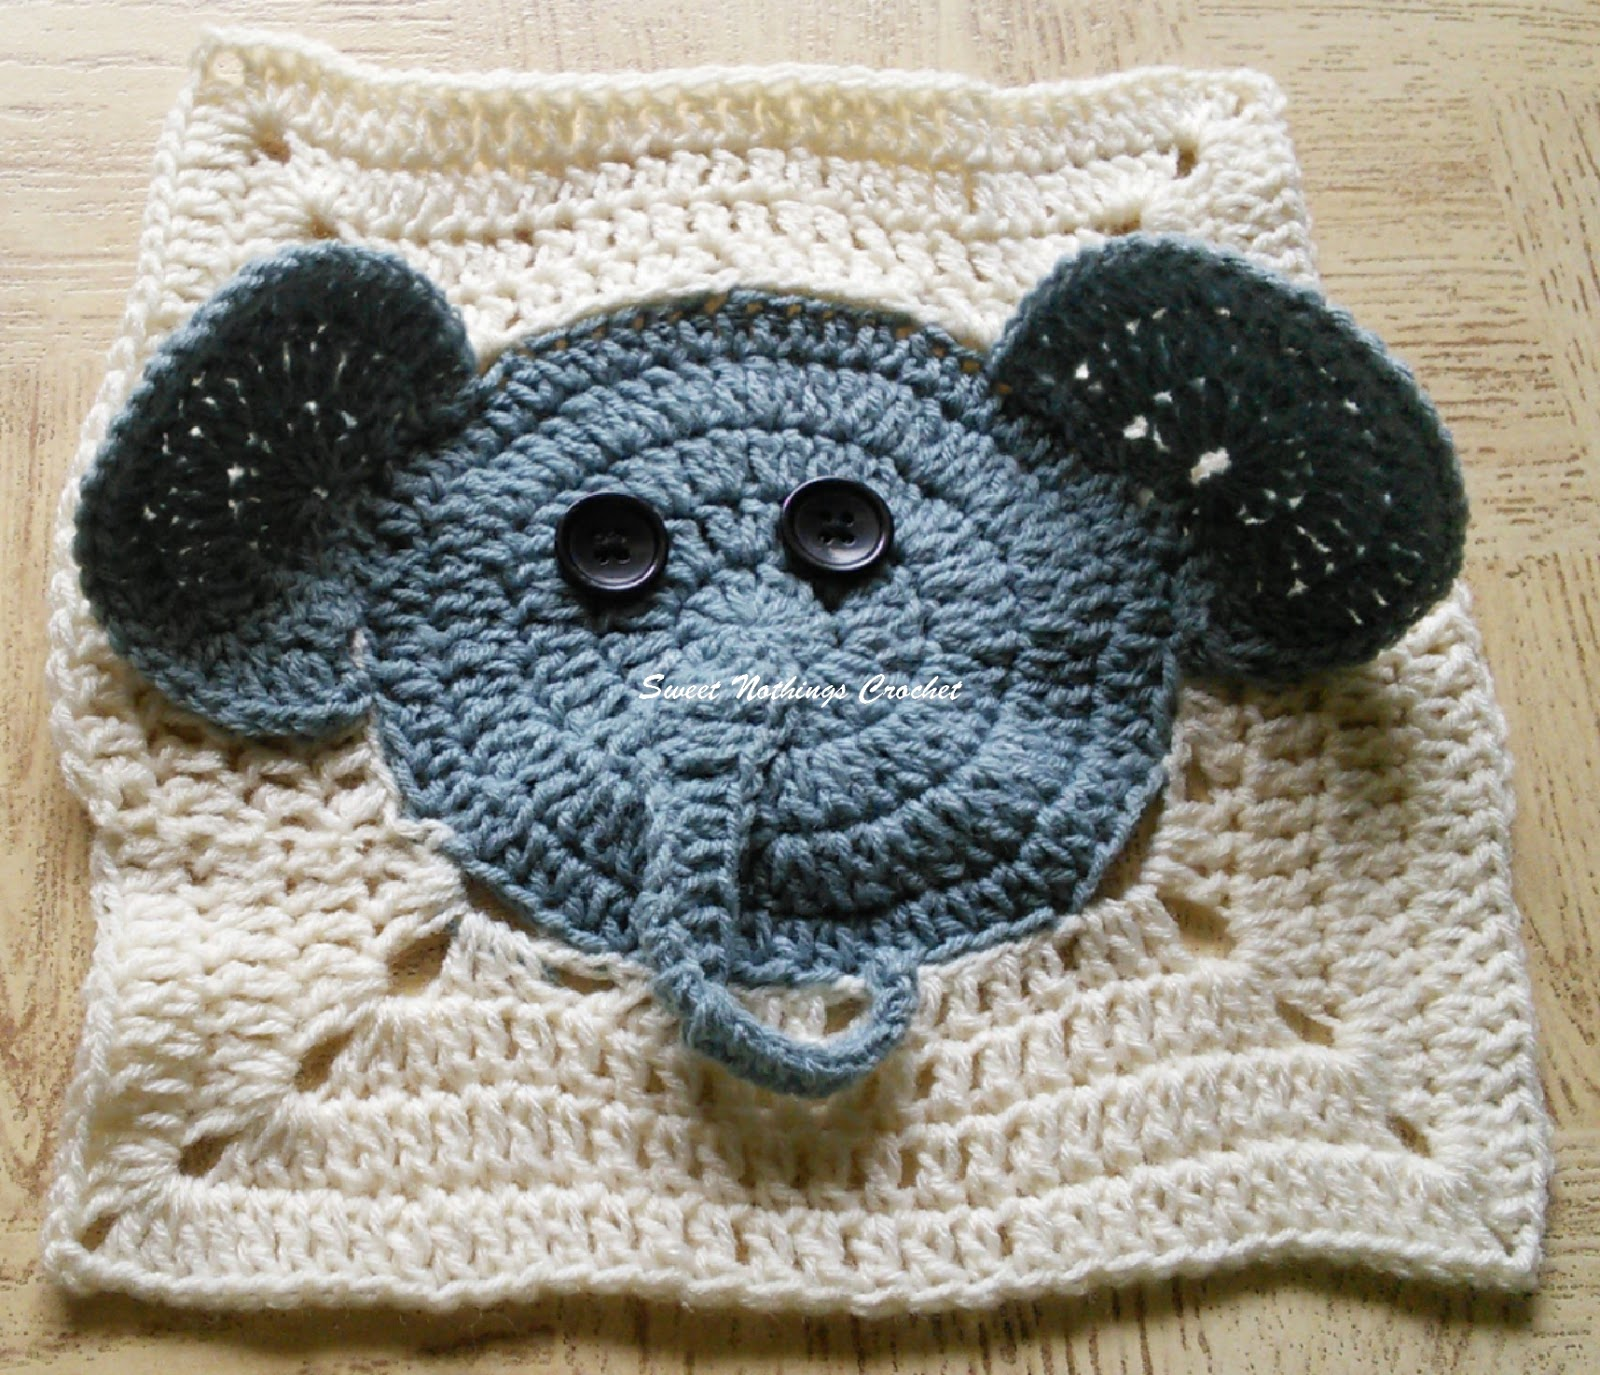 Sweet Nothings Crochet: ADORABLE ELEPHANT GRANNY SQUARE - IN